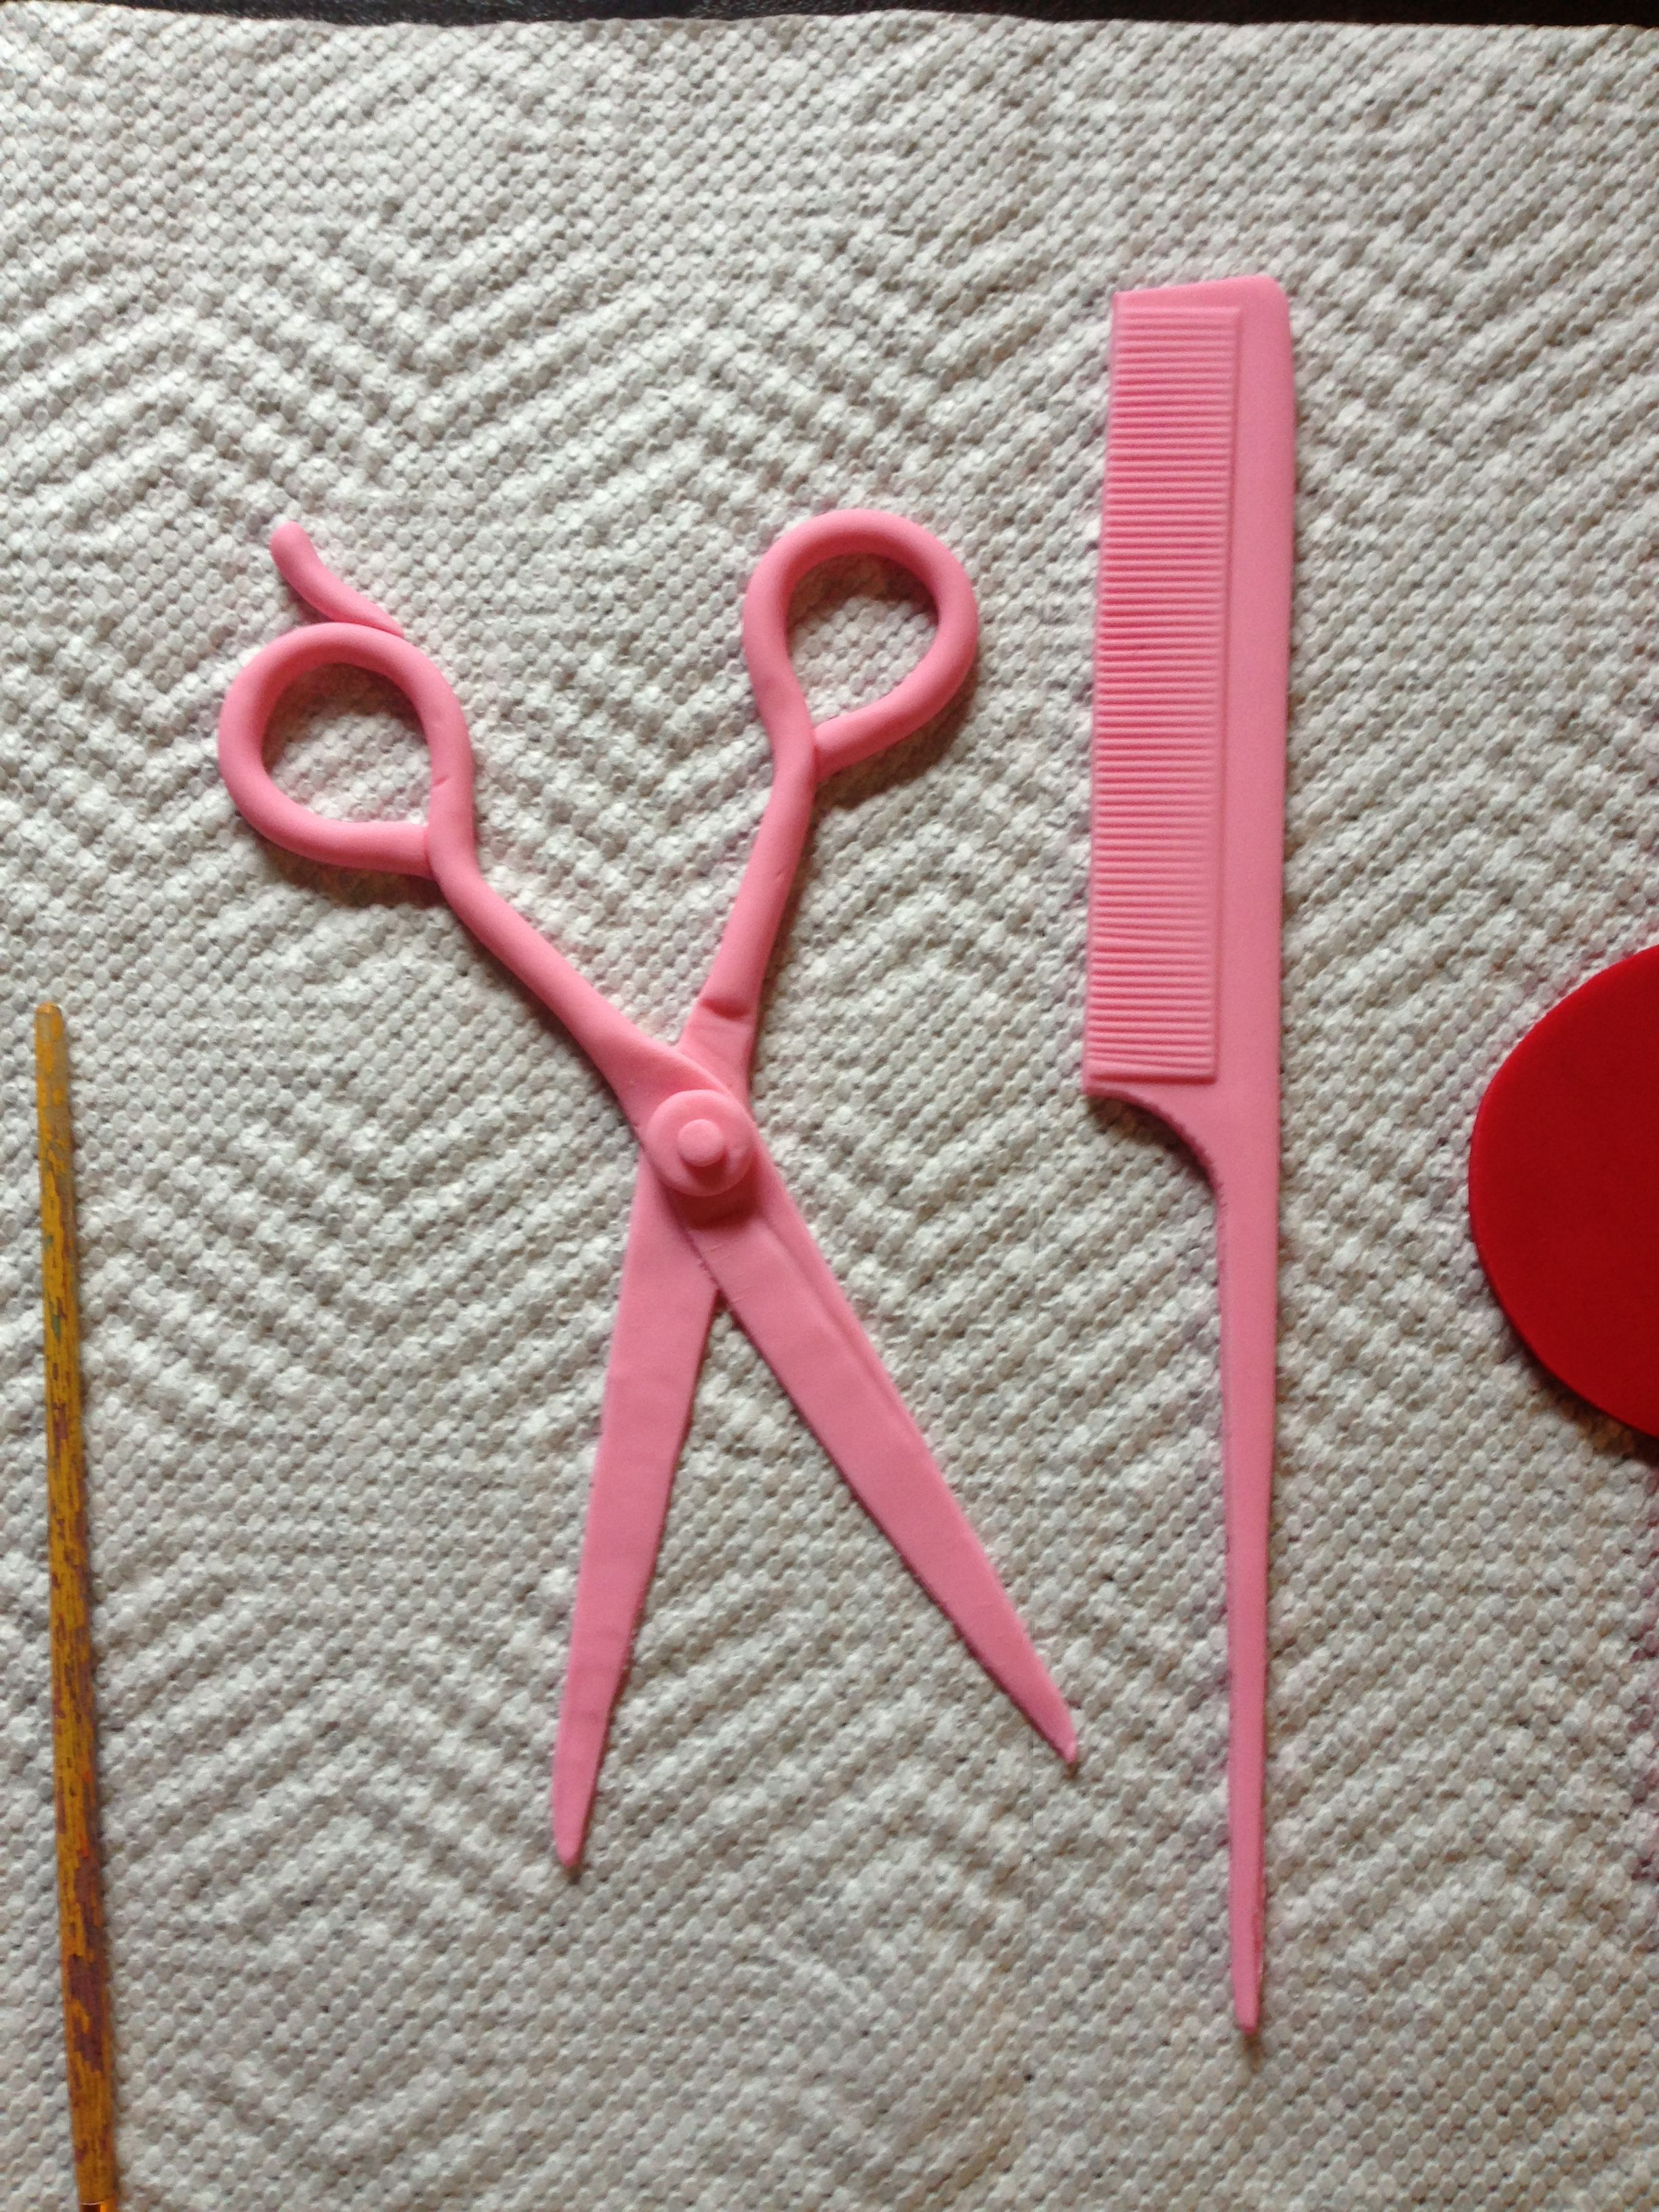 Fondant Shears And Weavin Comb Pick Handmade By Me Mallory Gray